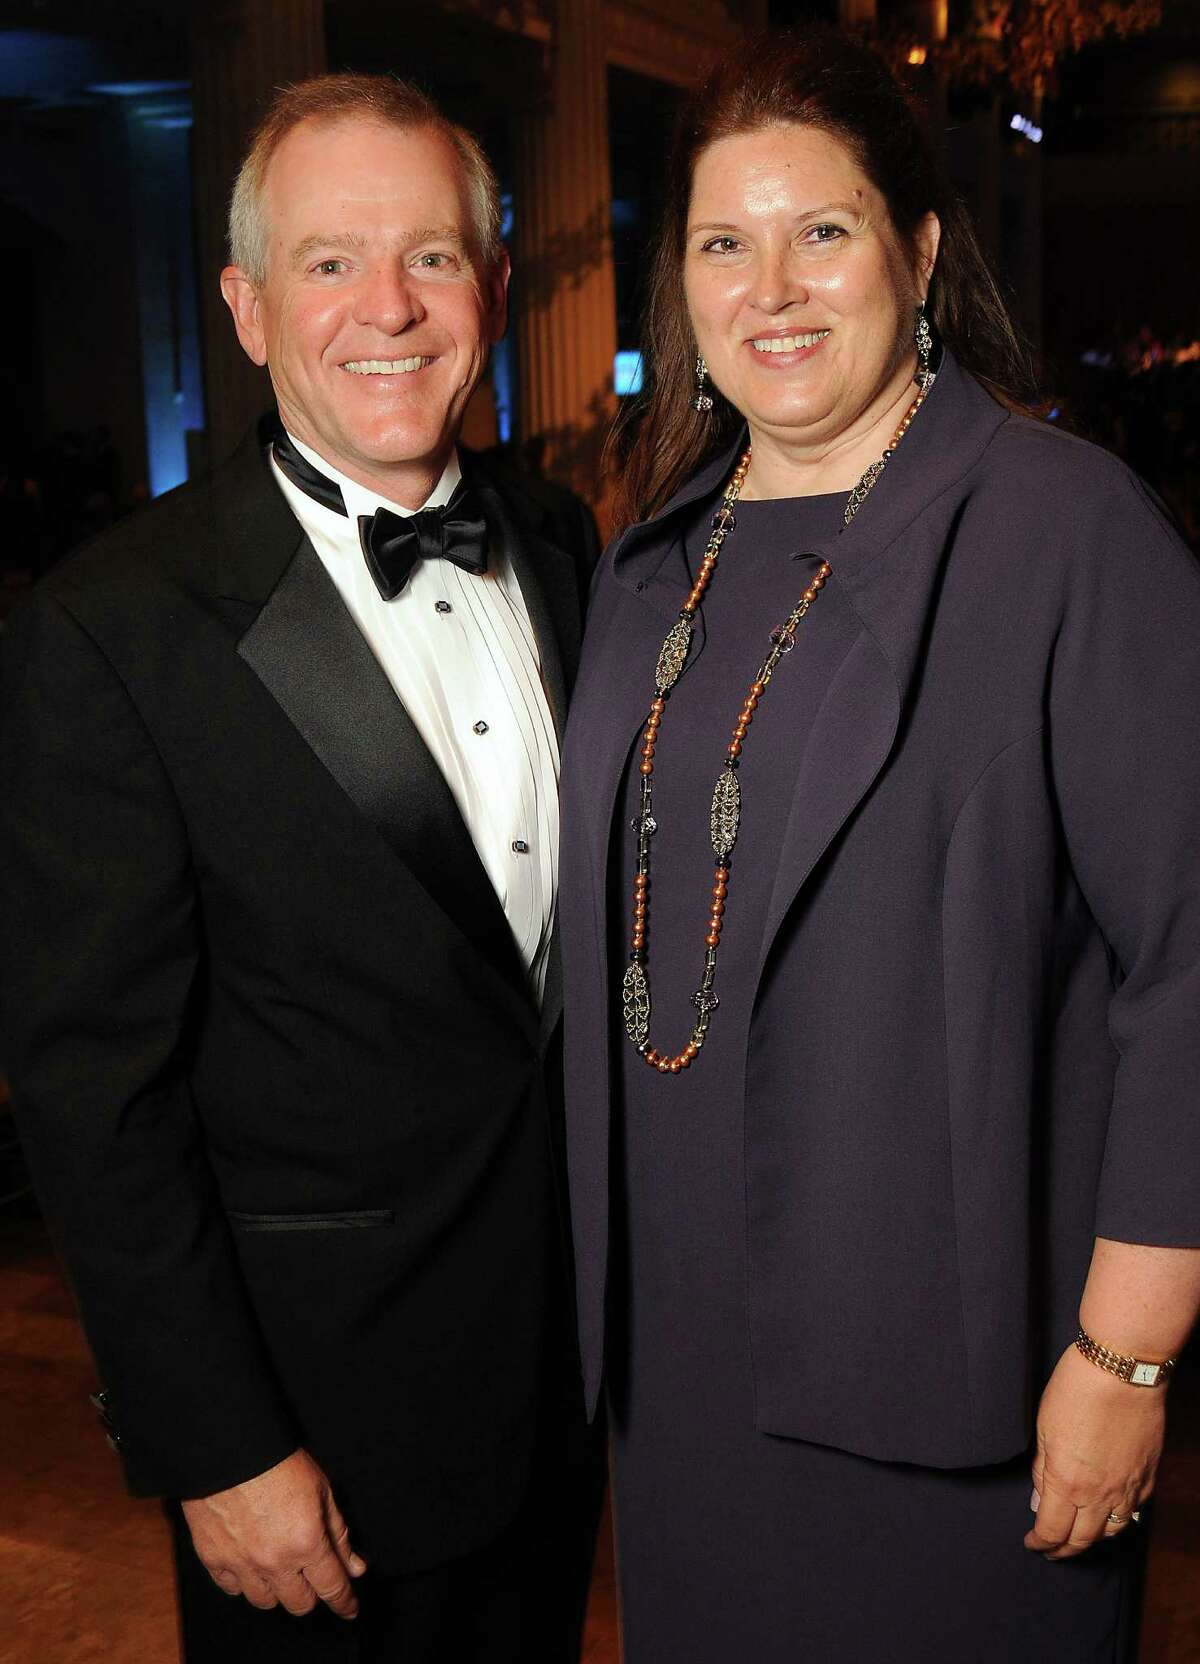 Barbara and Pat McCelvey chaired the Houston Symphony's Opening Night Gala at The Corinthian.